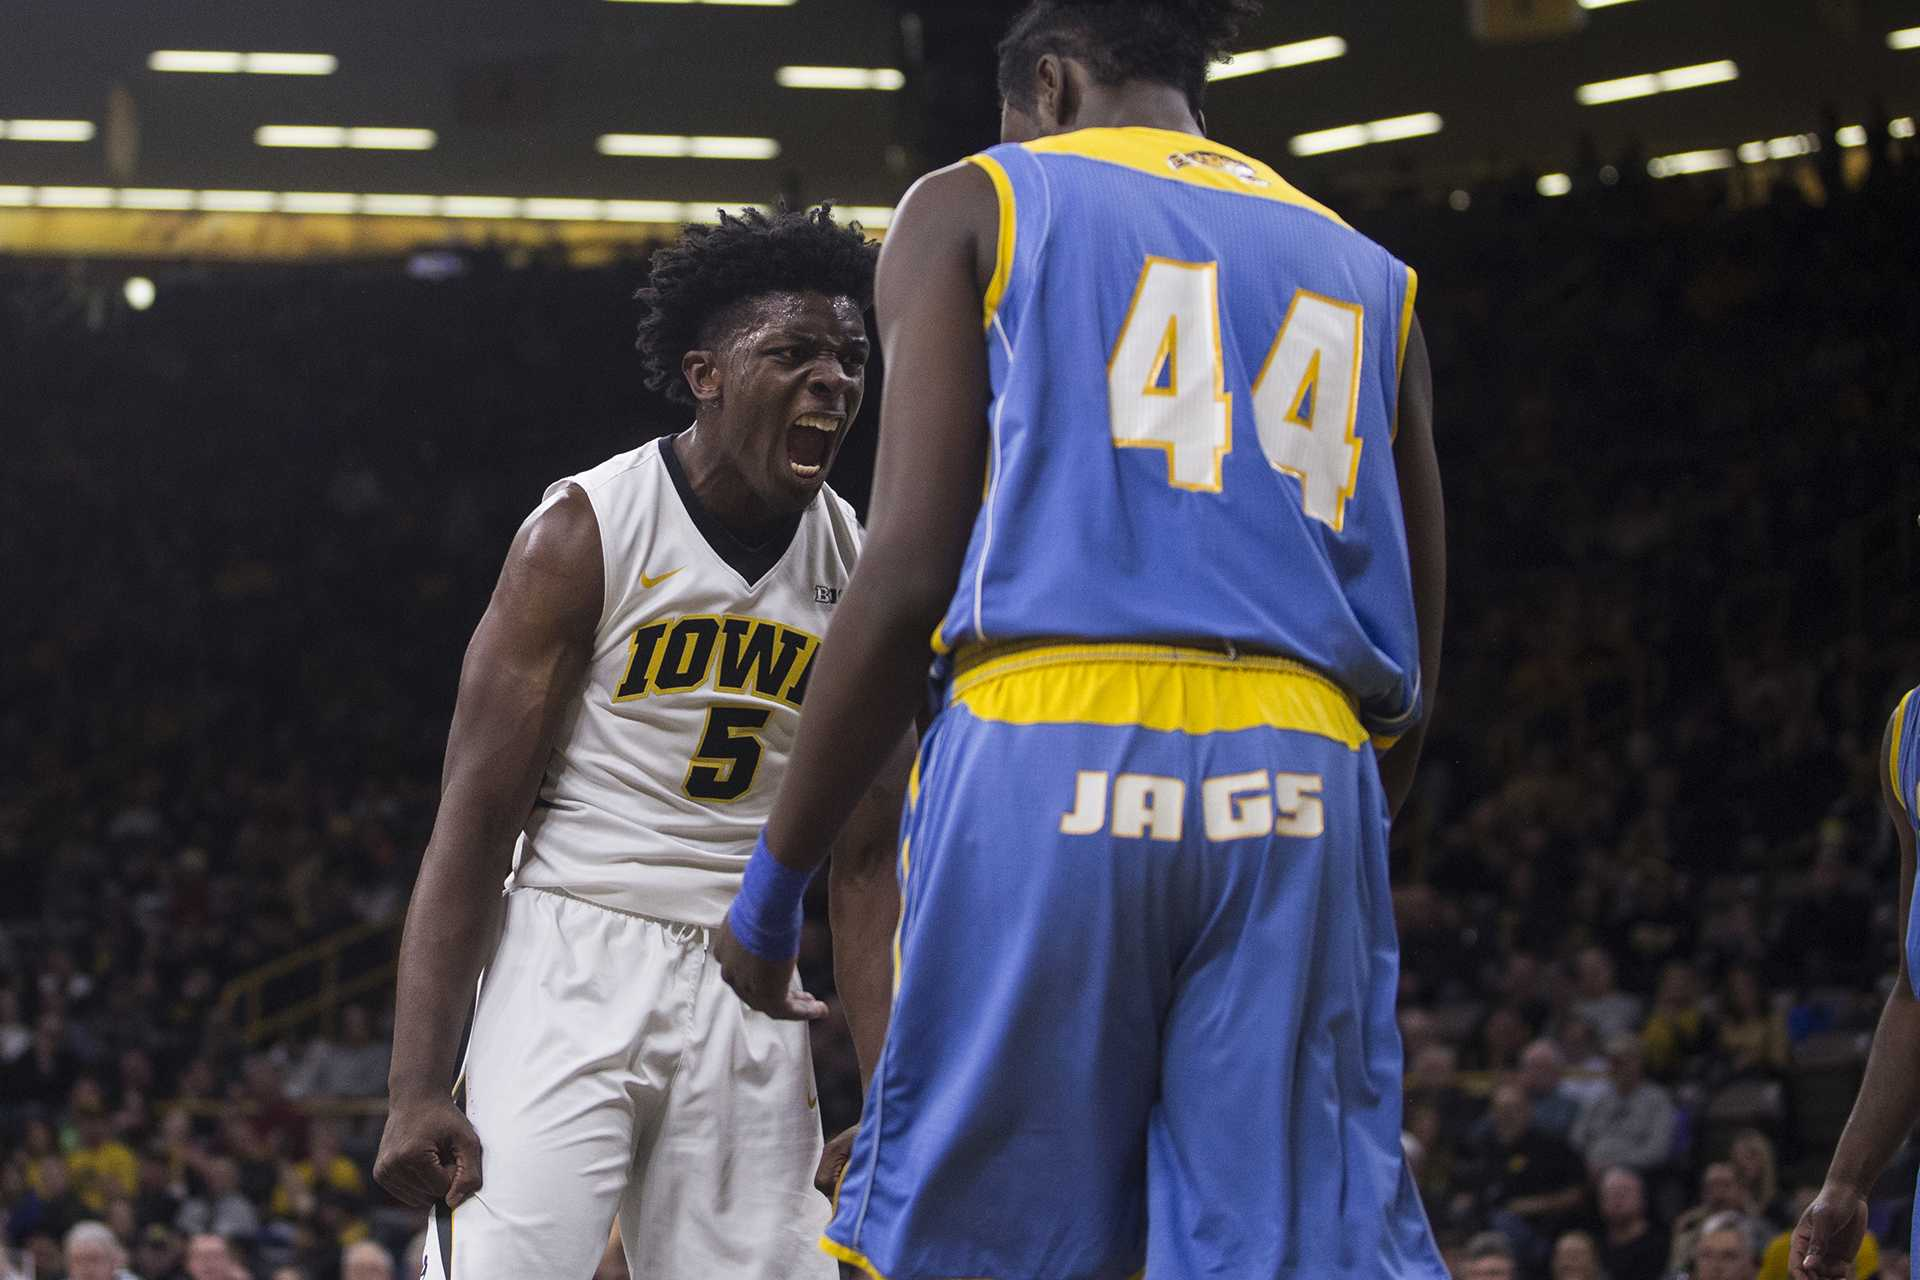 Iowa guard Tyler Cook (5) celebrates a slam dunk during the game between Iowa and Southern at Carver-Hawkeye Arena on Sunday, Dec. 10. Iowa went on to defeat Southern 91-60. (Ben Allan Smith/The Daily Iowan)